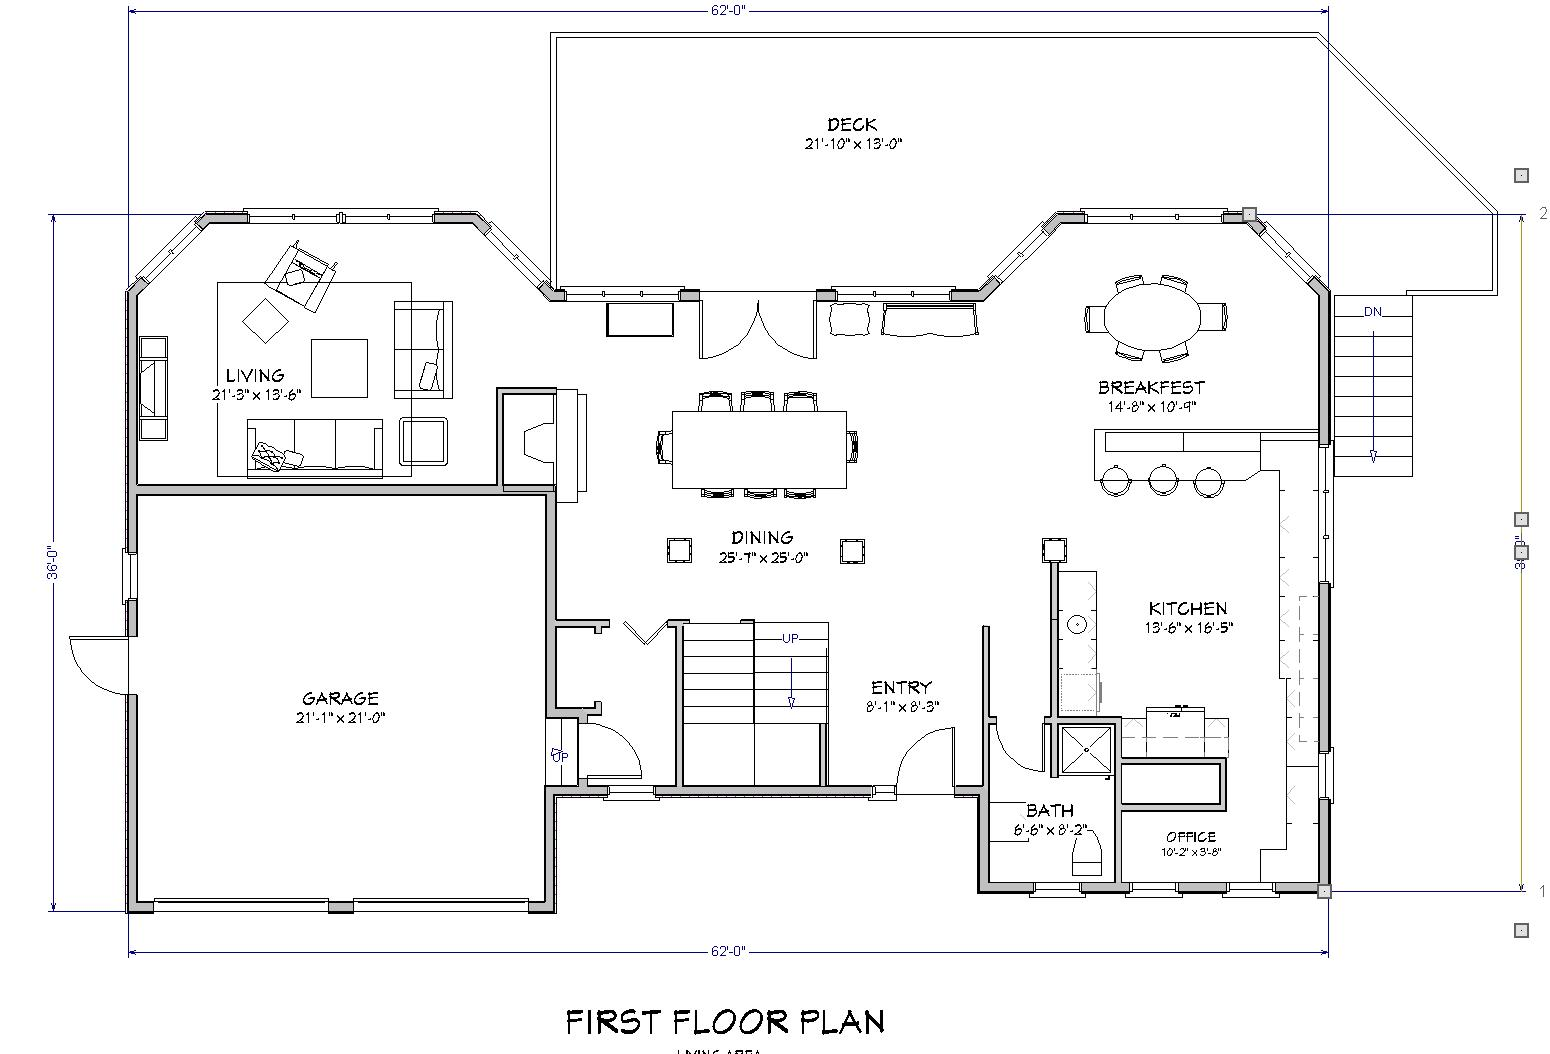 Beach house plan lake house plan cape cod beach house Beach house plans